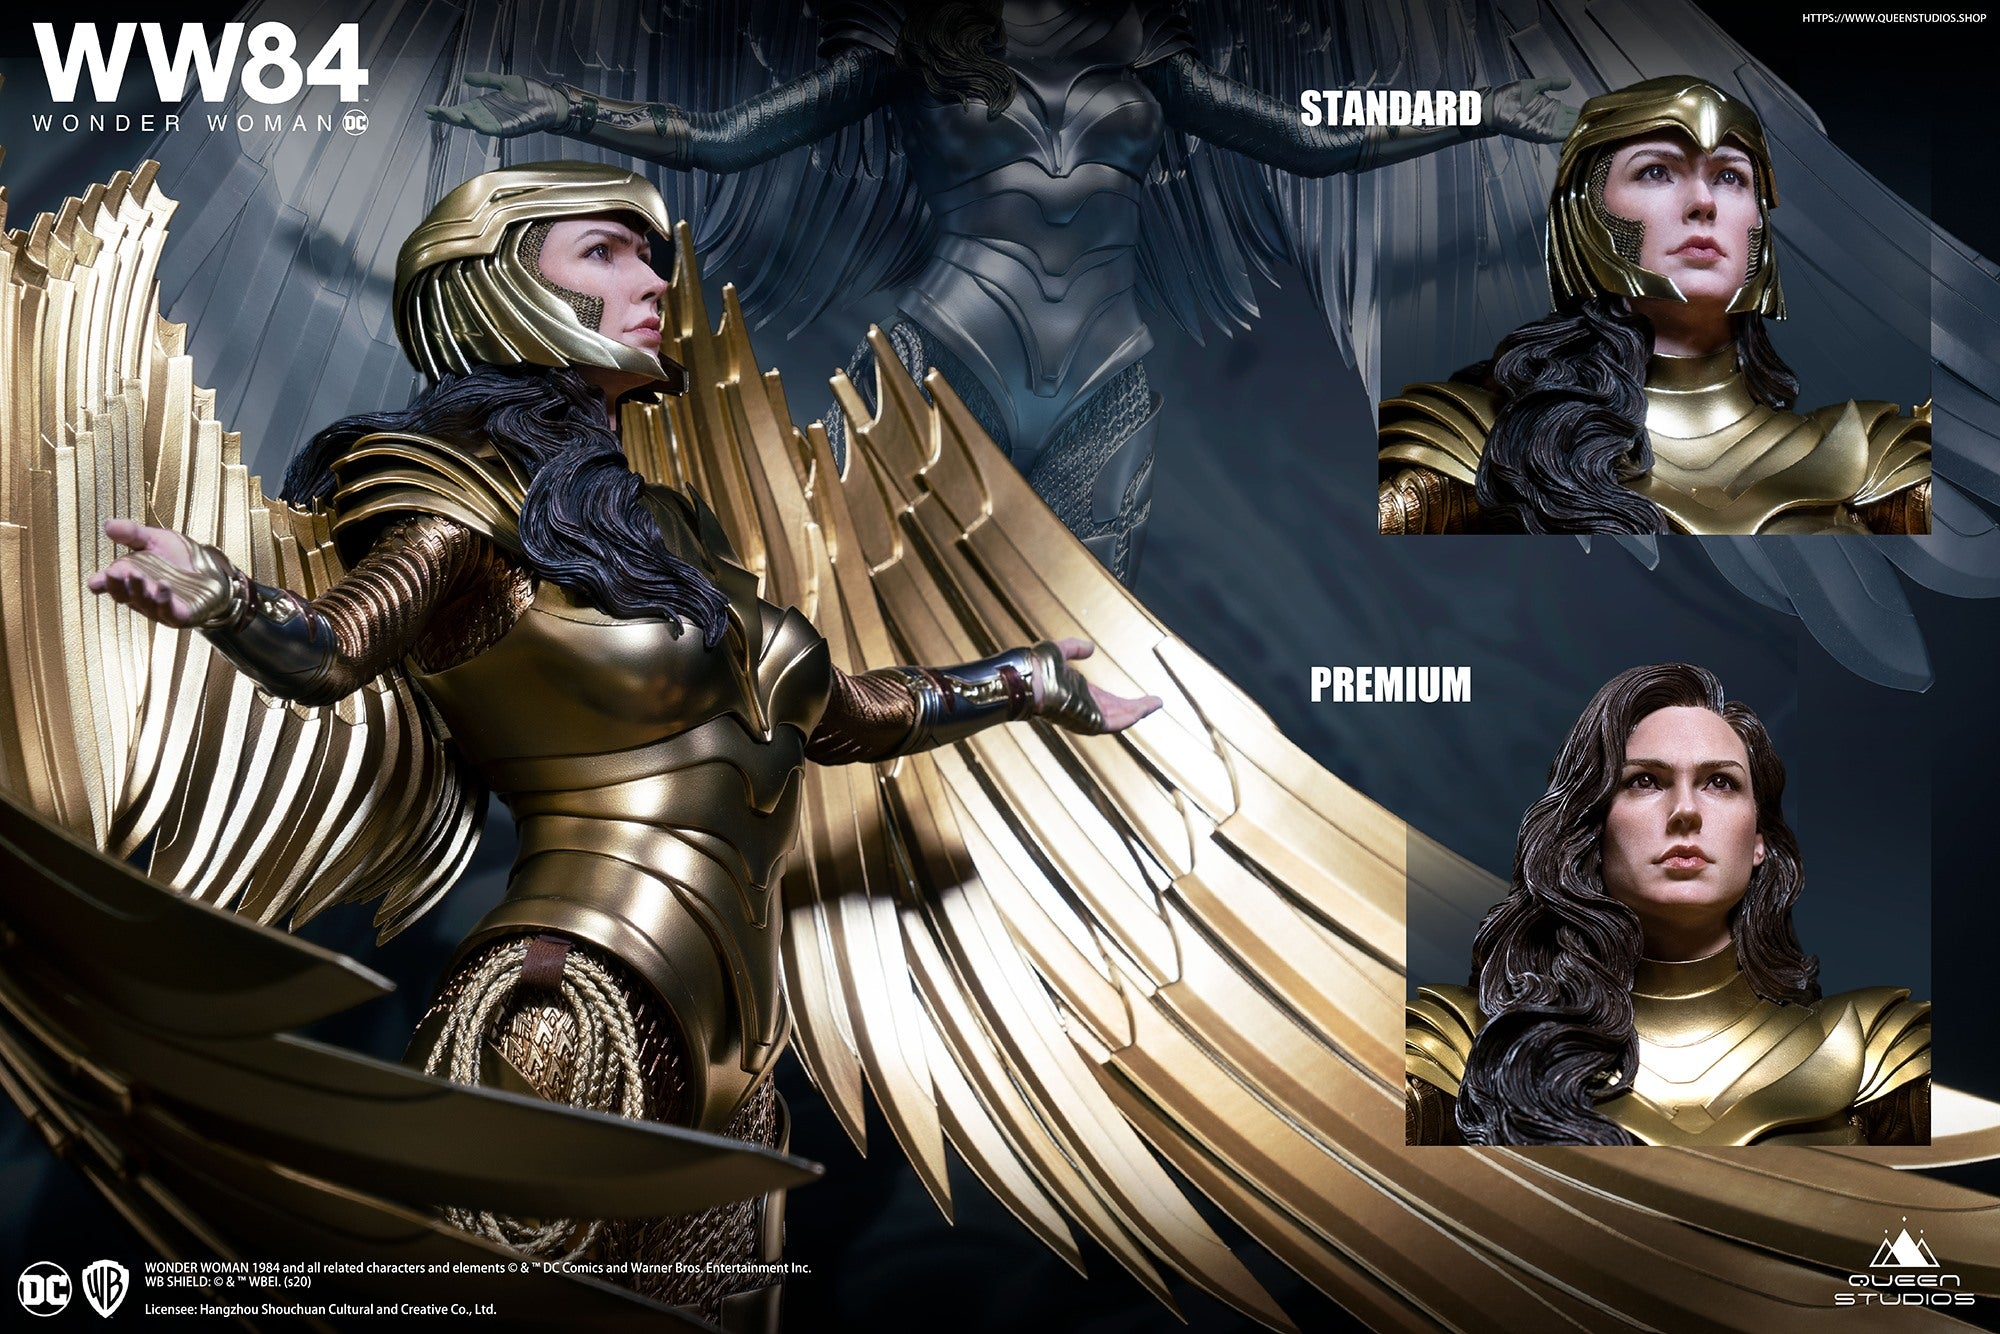 Queen Studios - Wonder Woman 1984 - Wonder Woman (Golden Armor) (1/4 Scale) (Premium Ver.)